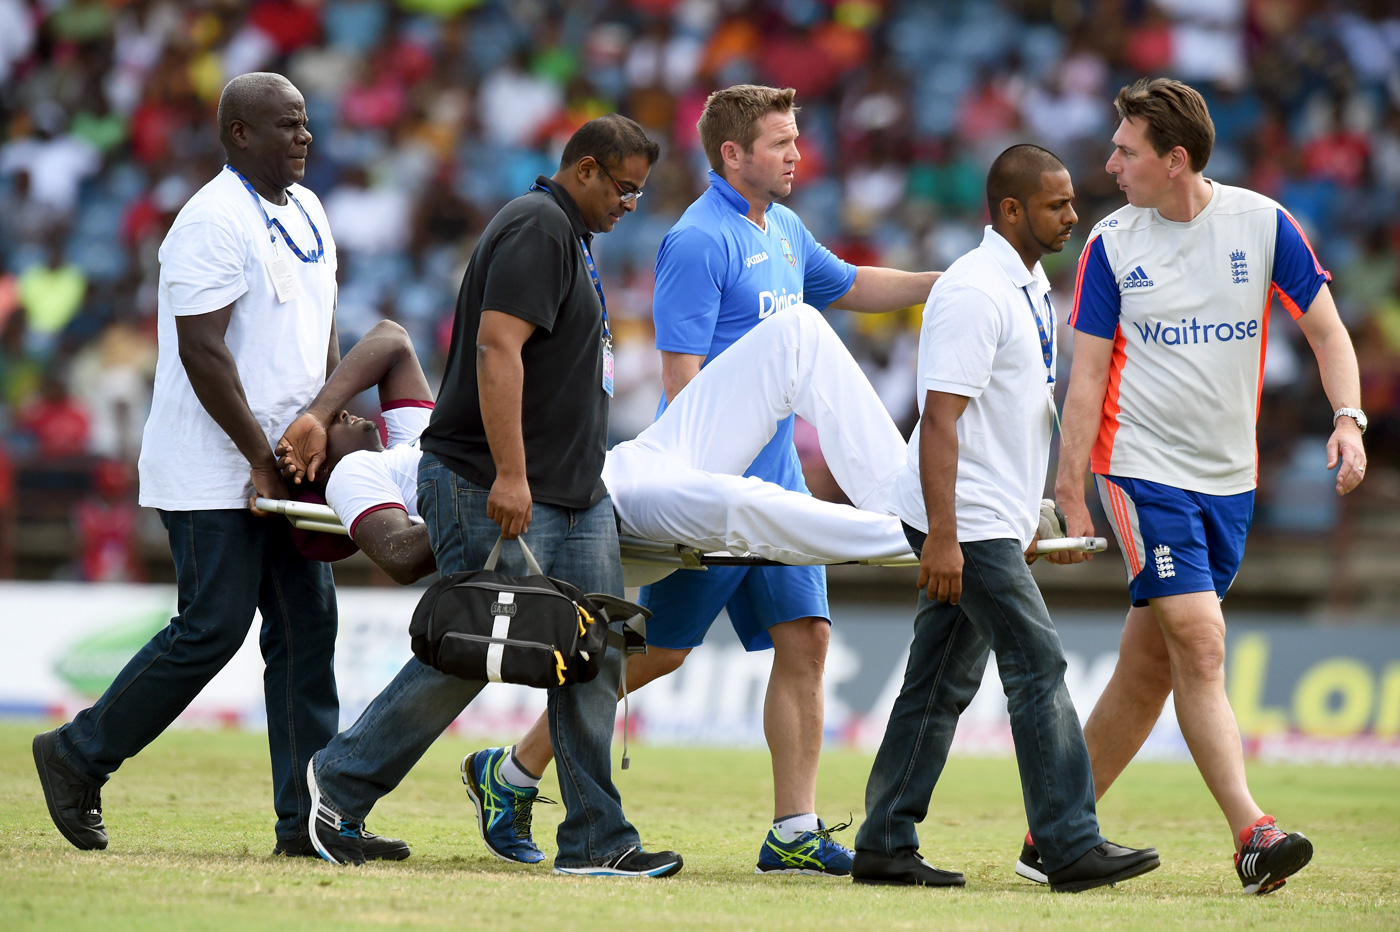 Is there a case for injury substitutes being used in Test cricket?